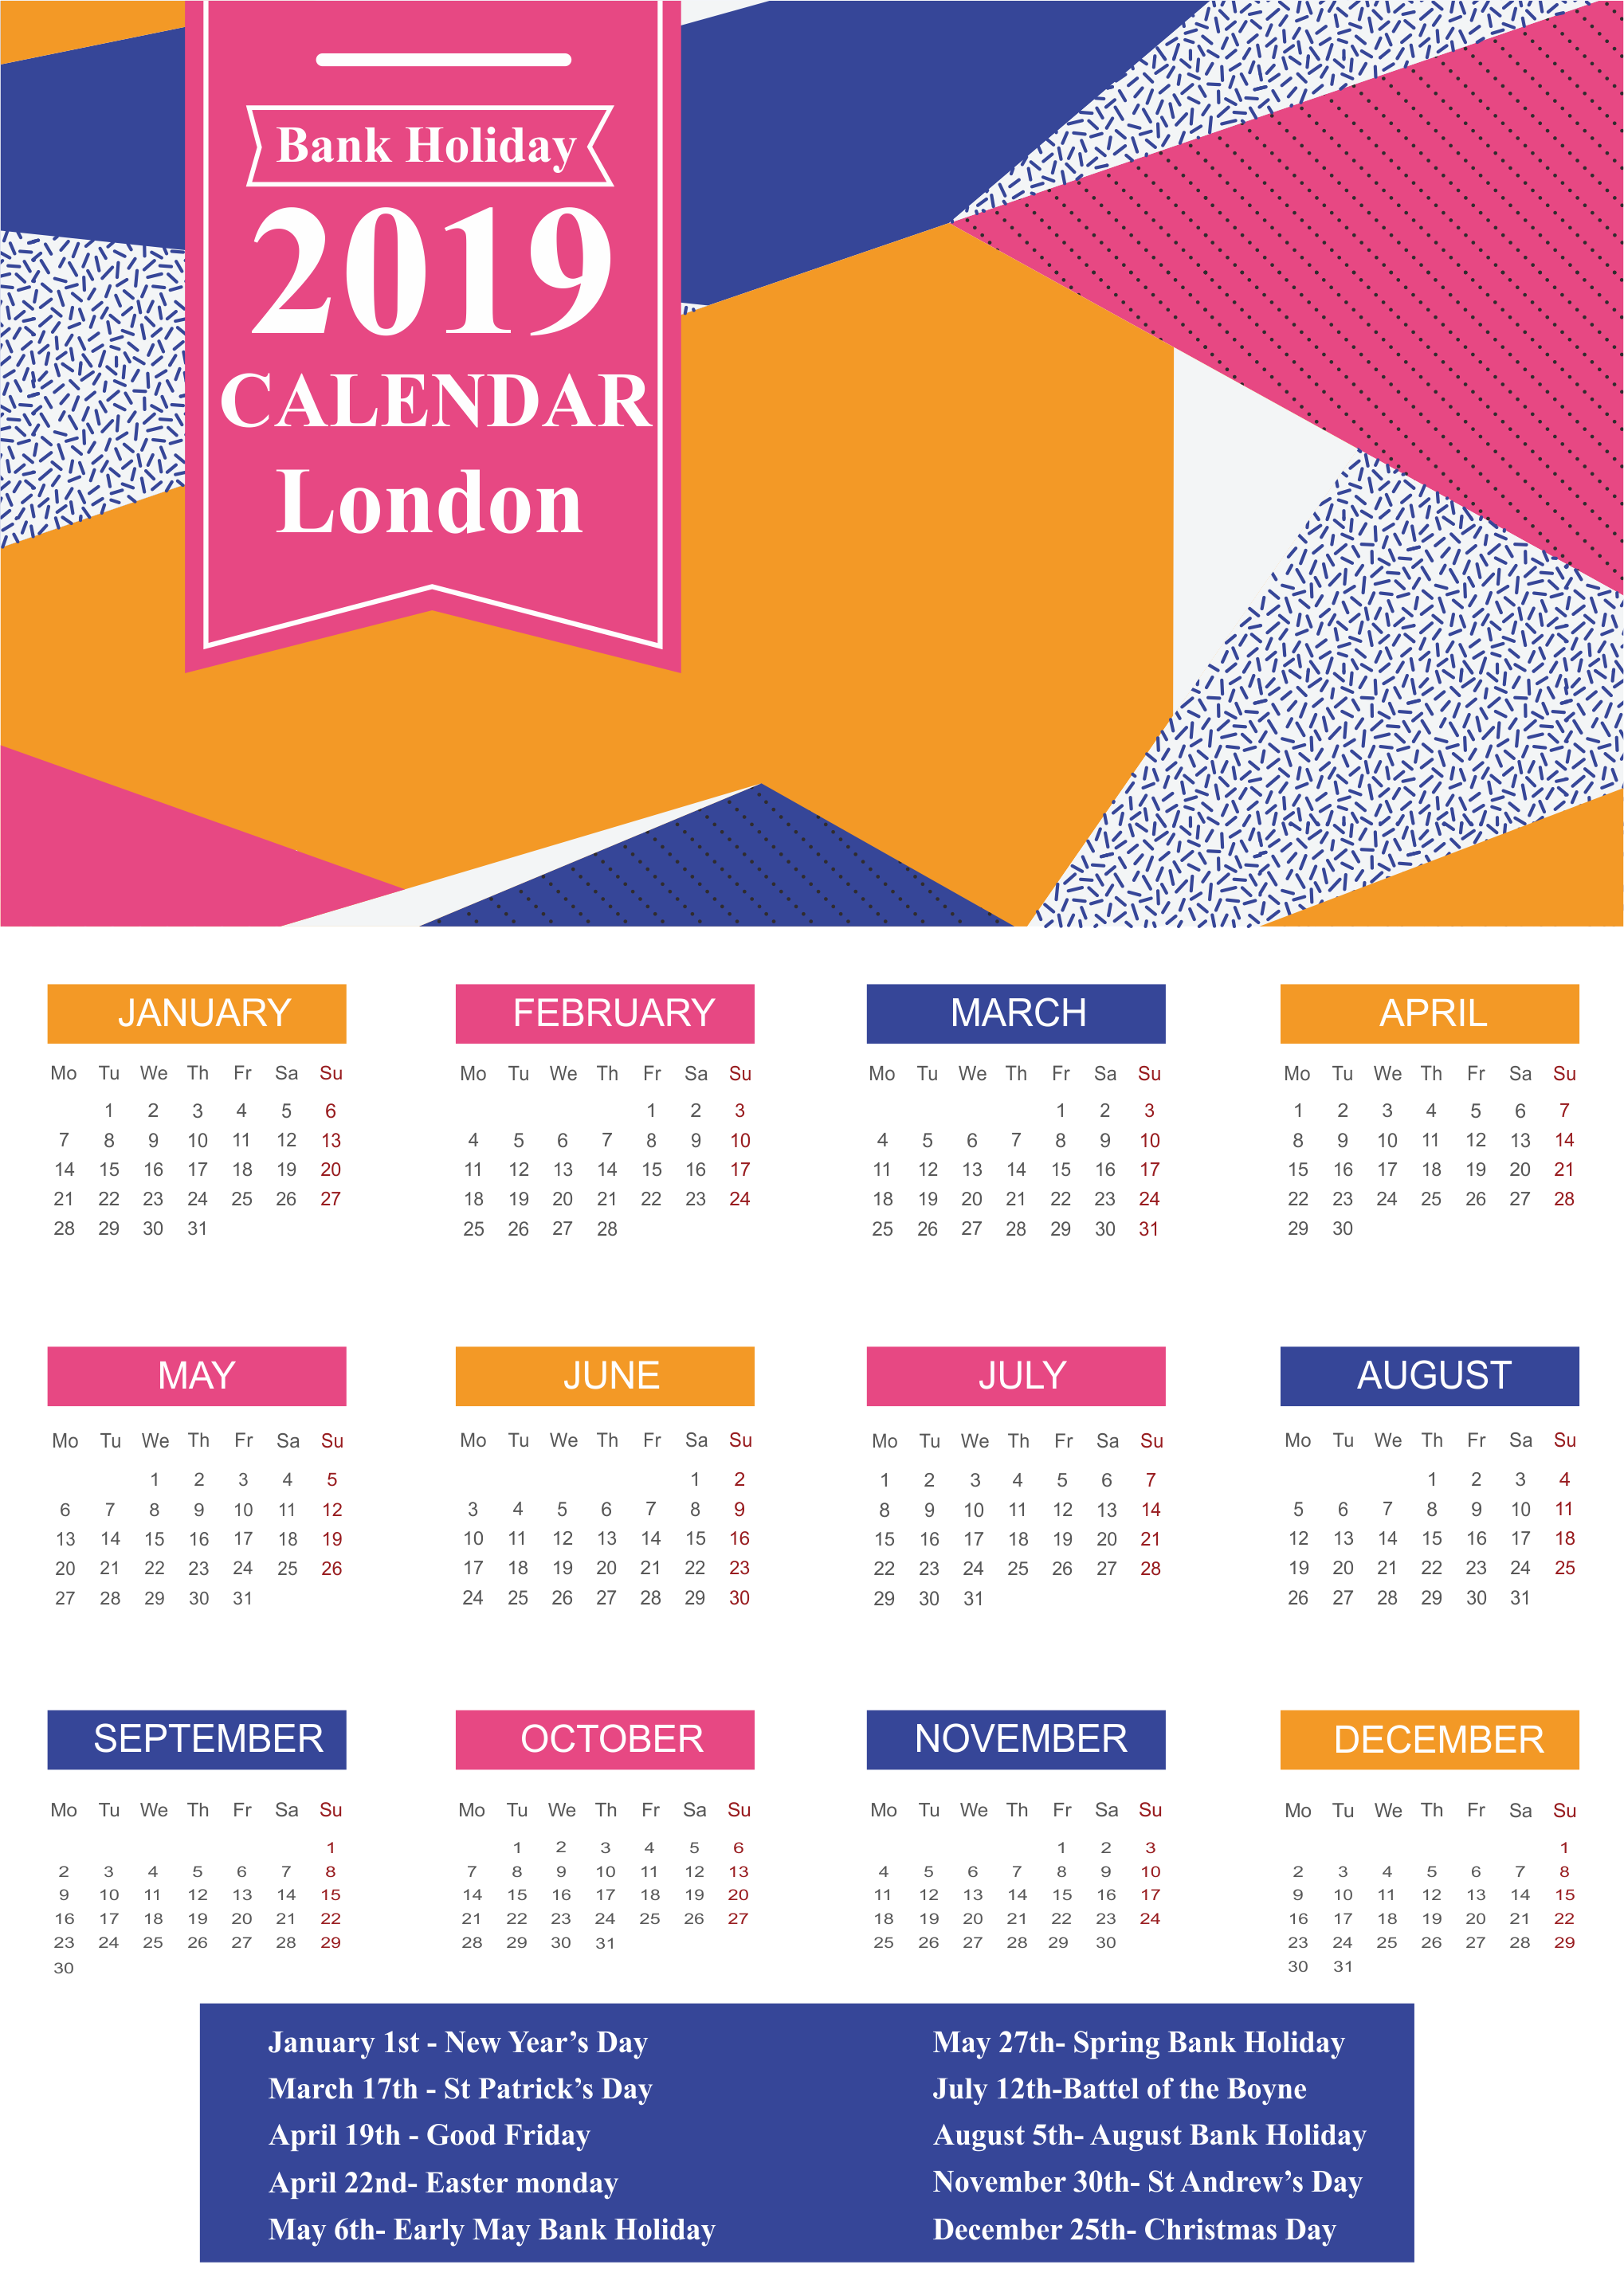 London Holidays 2019 Calendar